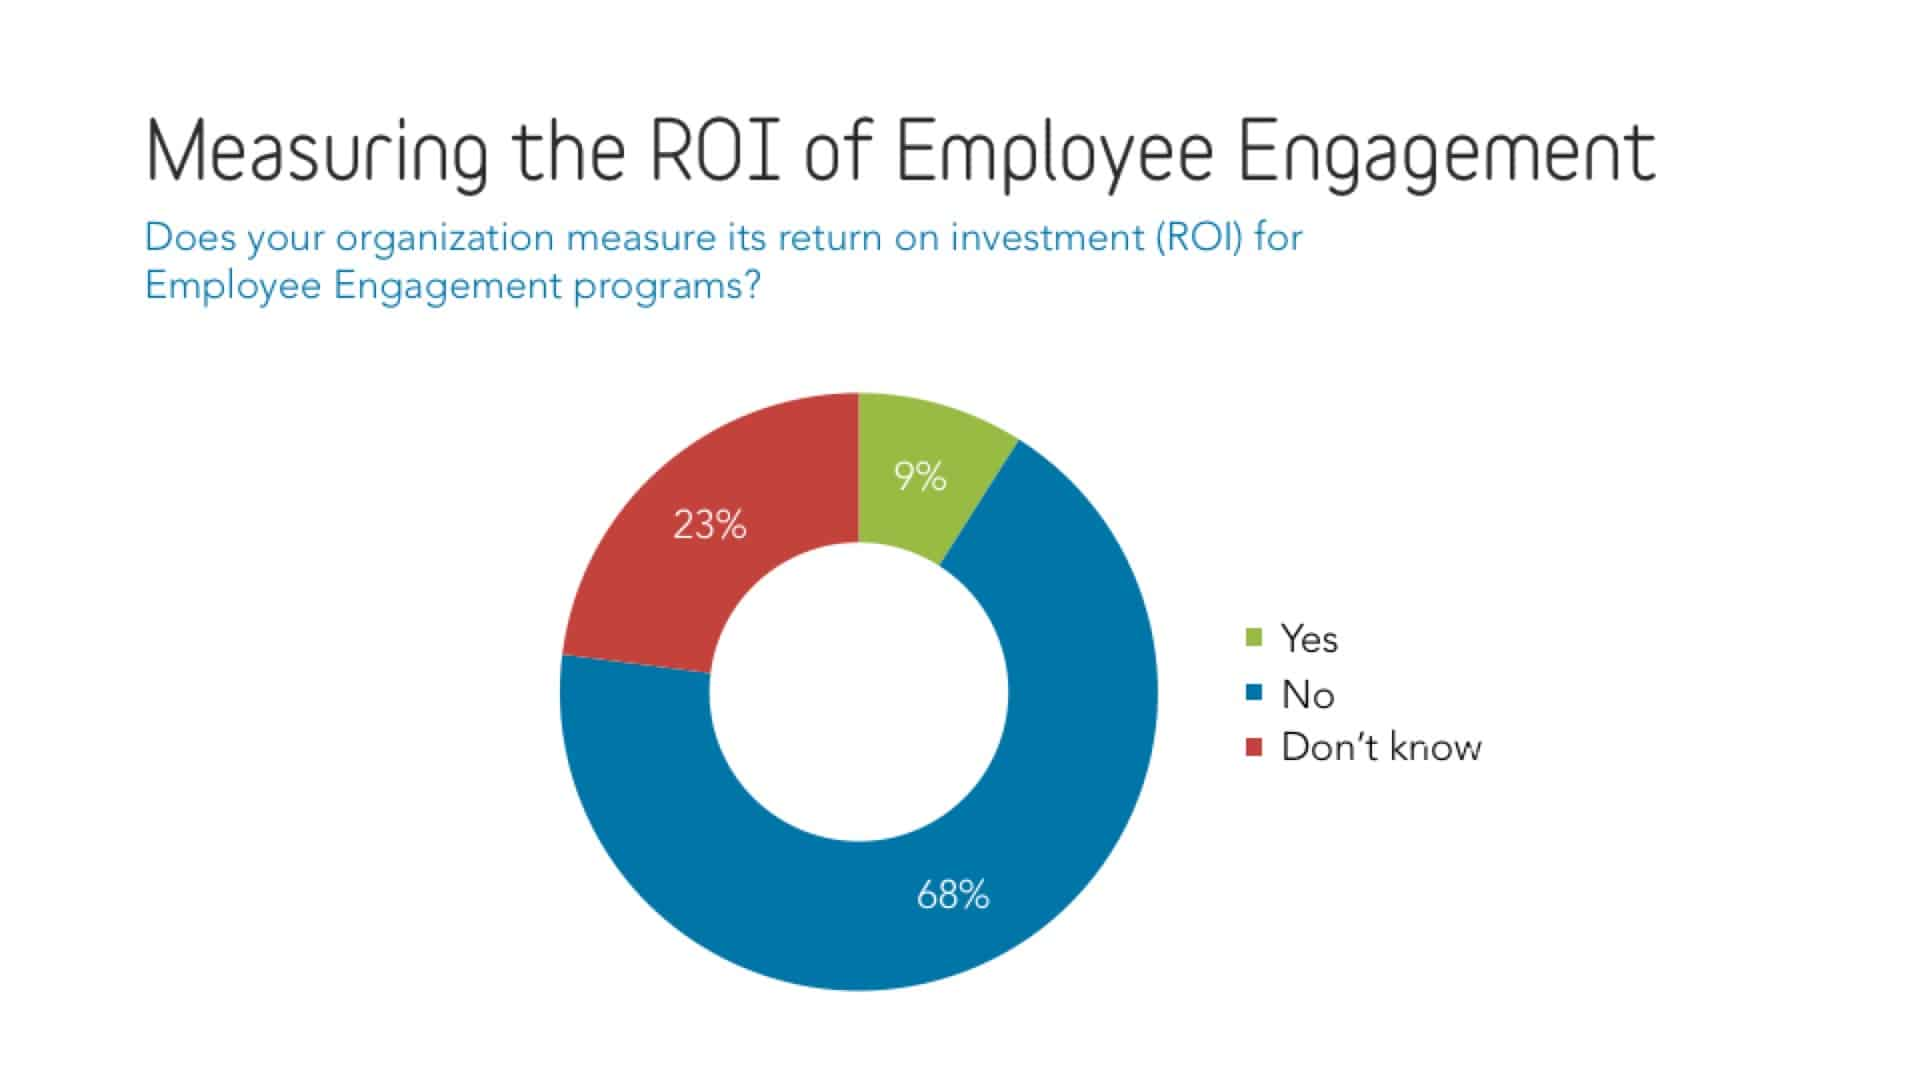 Measure the ROI of Employee Engagement